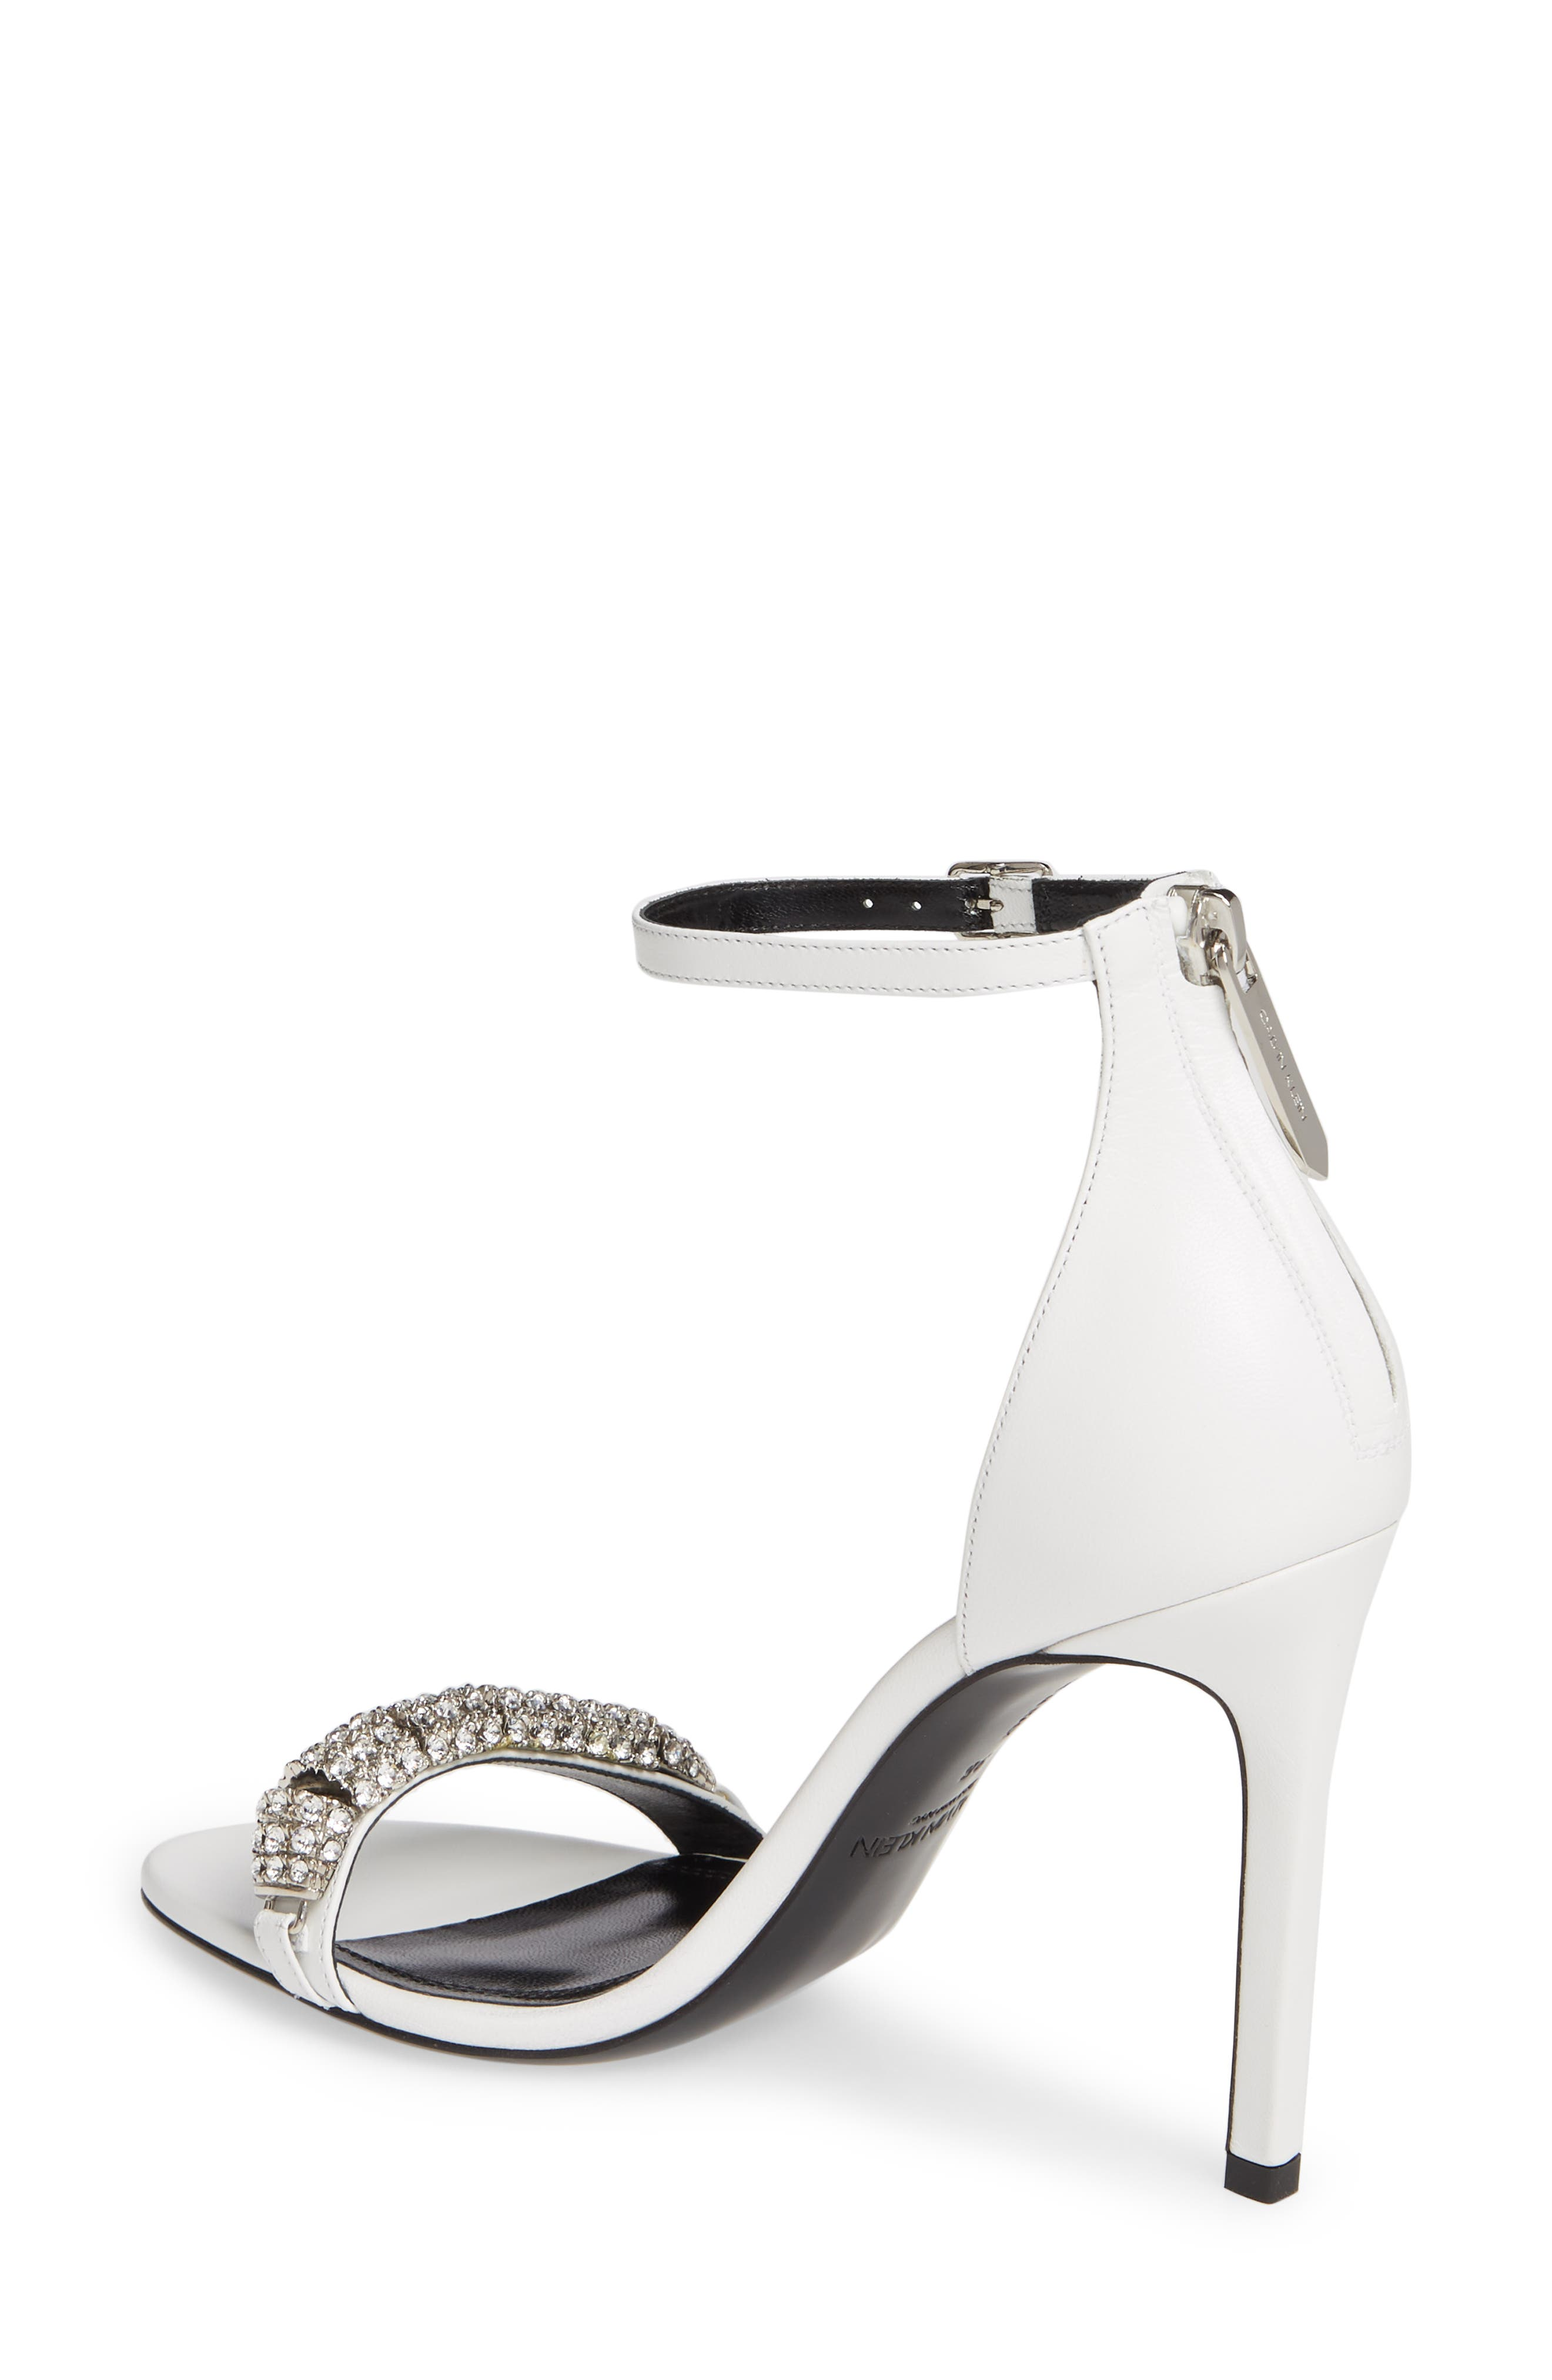 CALVIN KLEIN 205W39NYC, Camelle Sandal, Alternate thumbnail 2, color, WHITE